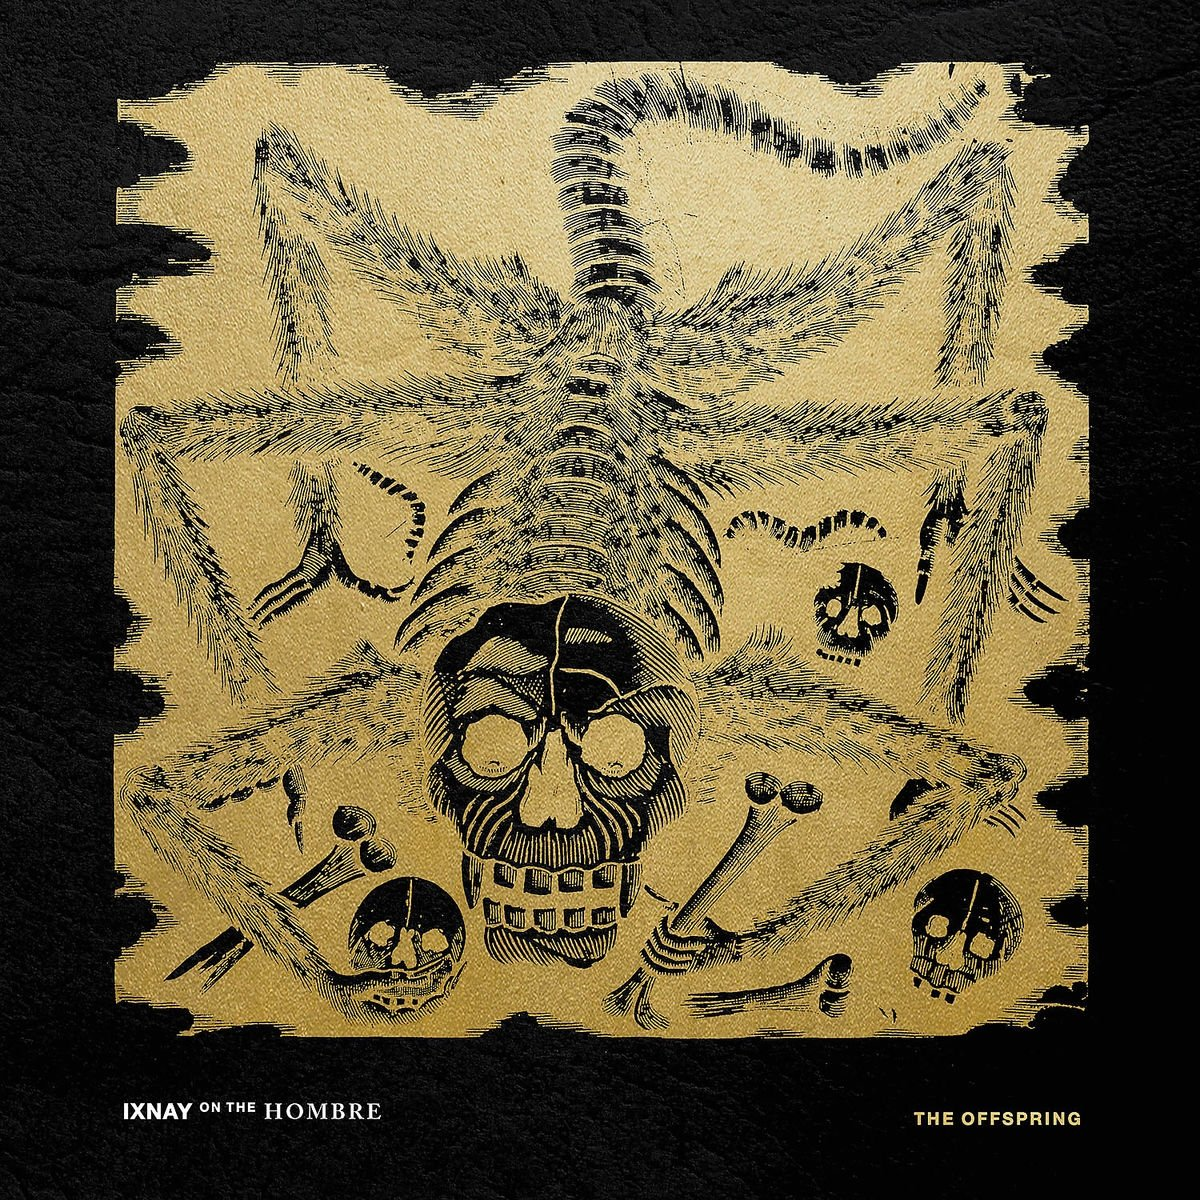 The Offspring - Ixnay On The Hombre (LP Vinyl)